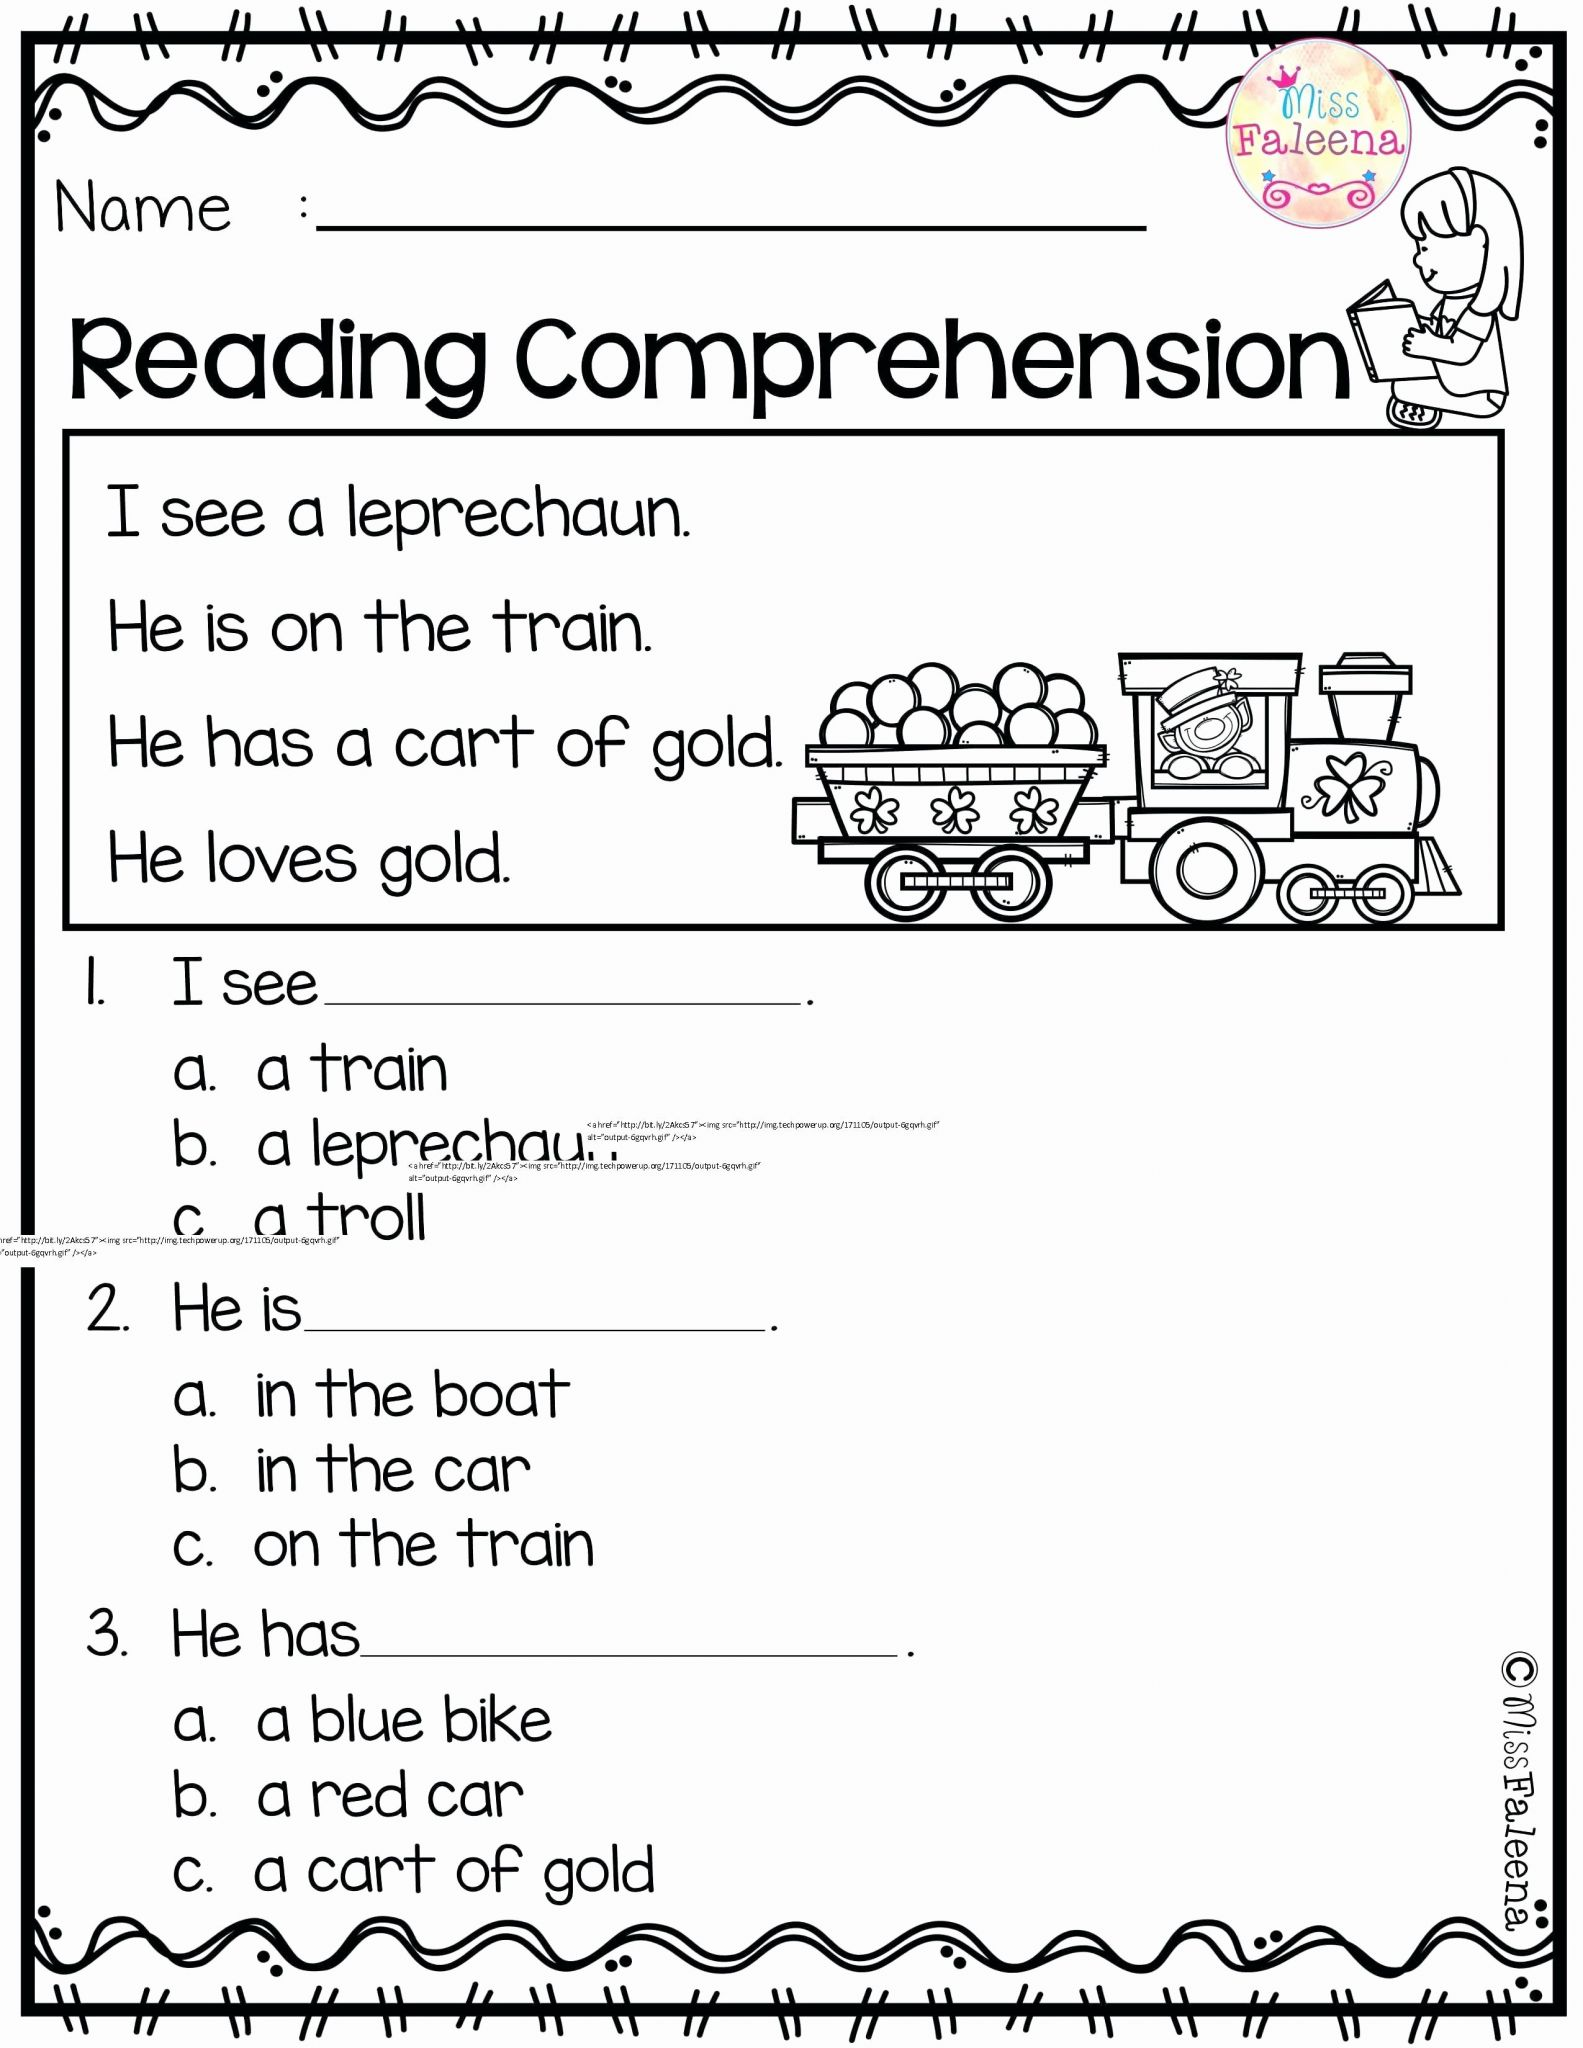 46 Free Printable 9th Grade Reading Comprehension